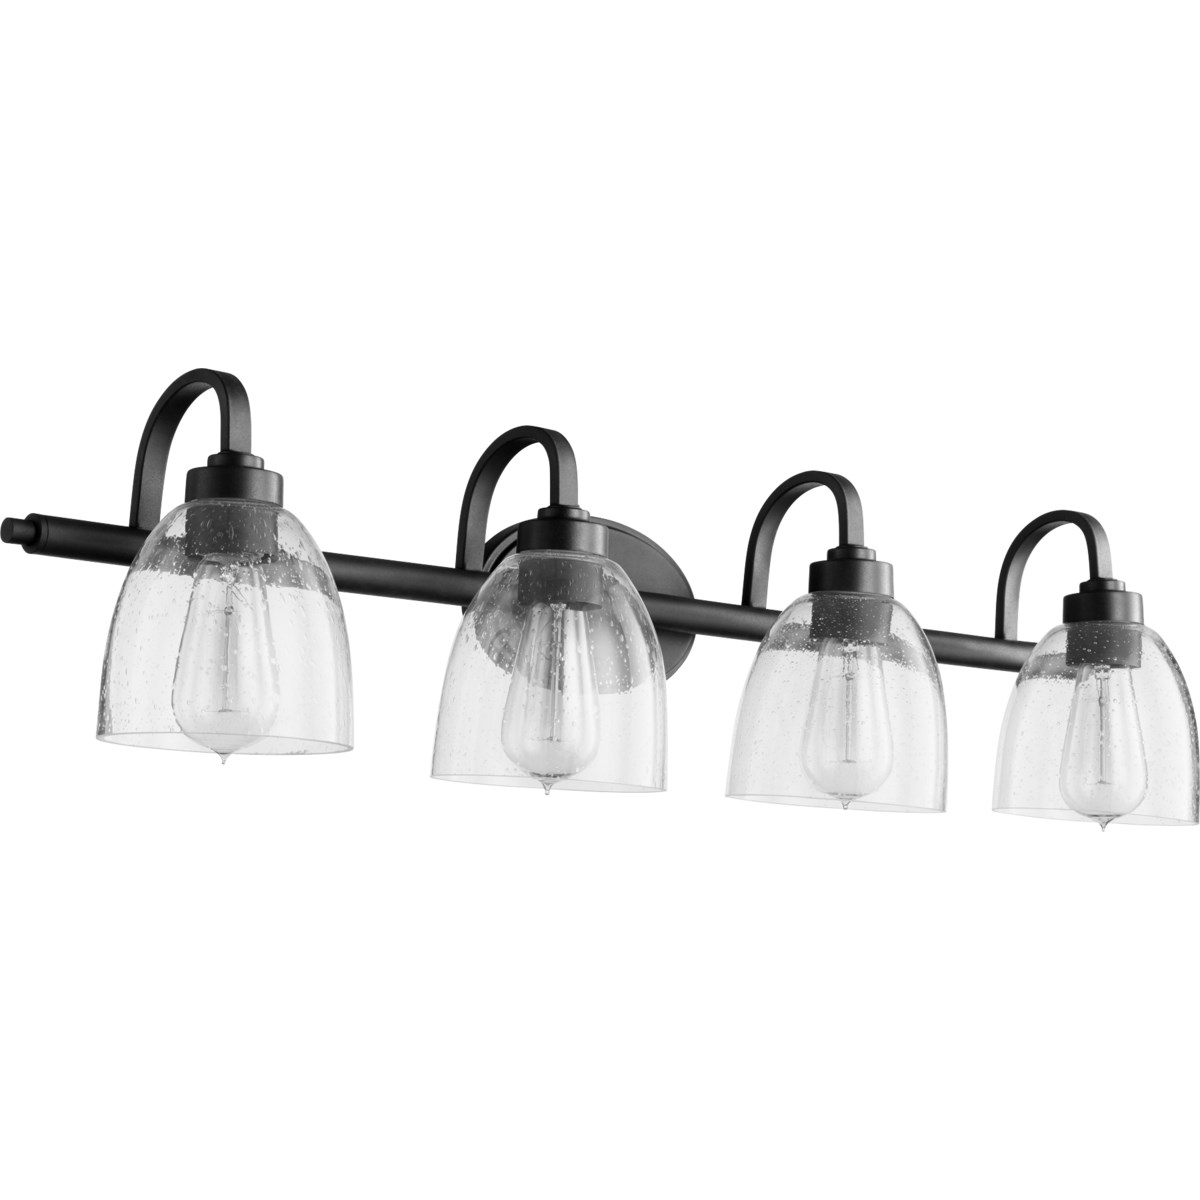 Reyes 4 Light Traditional Black with Clear Glass Vanity